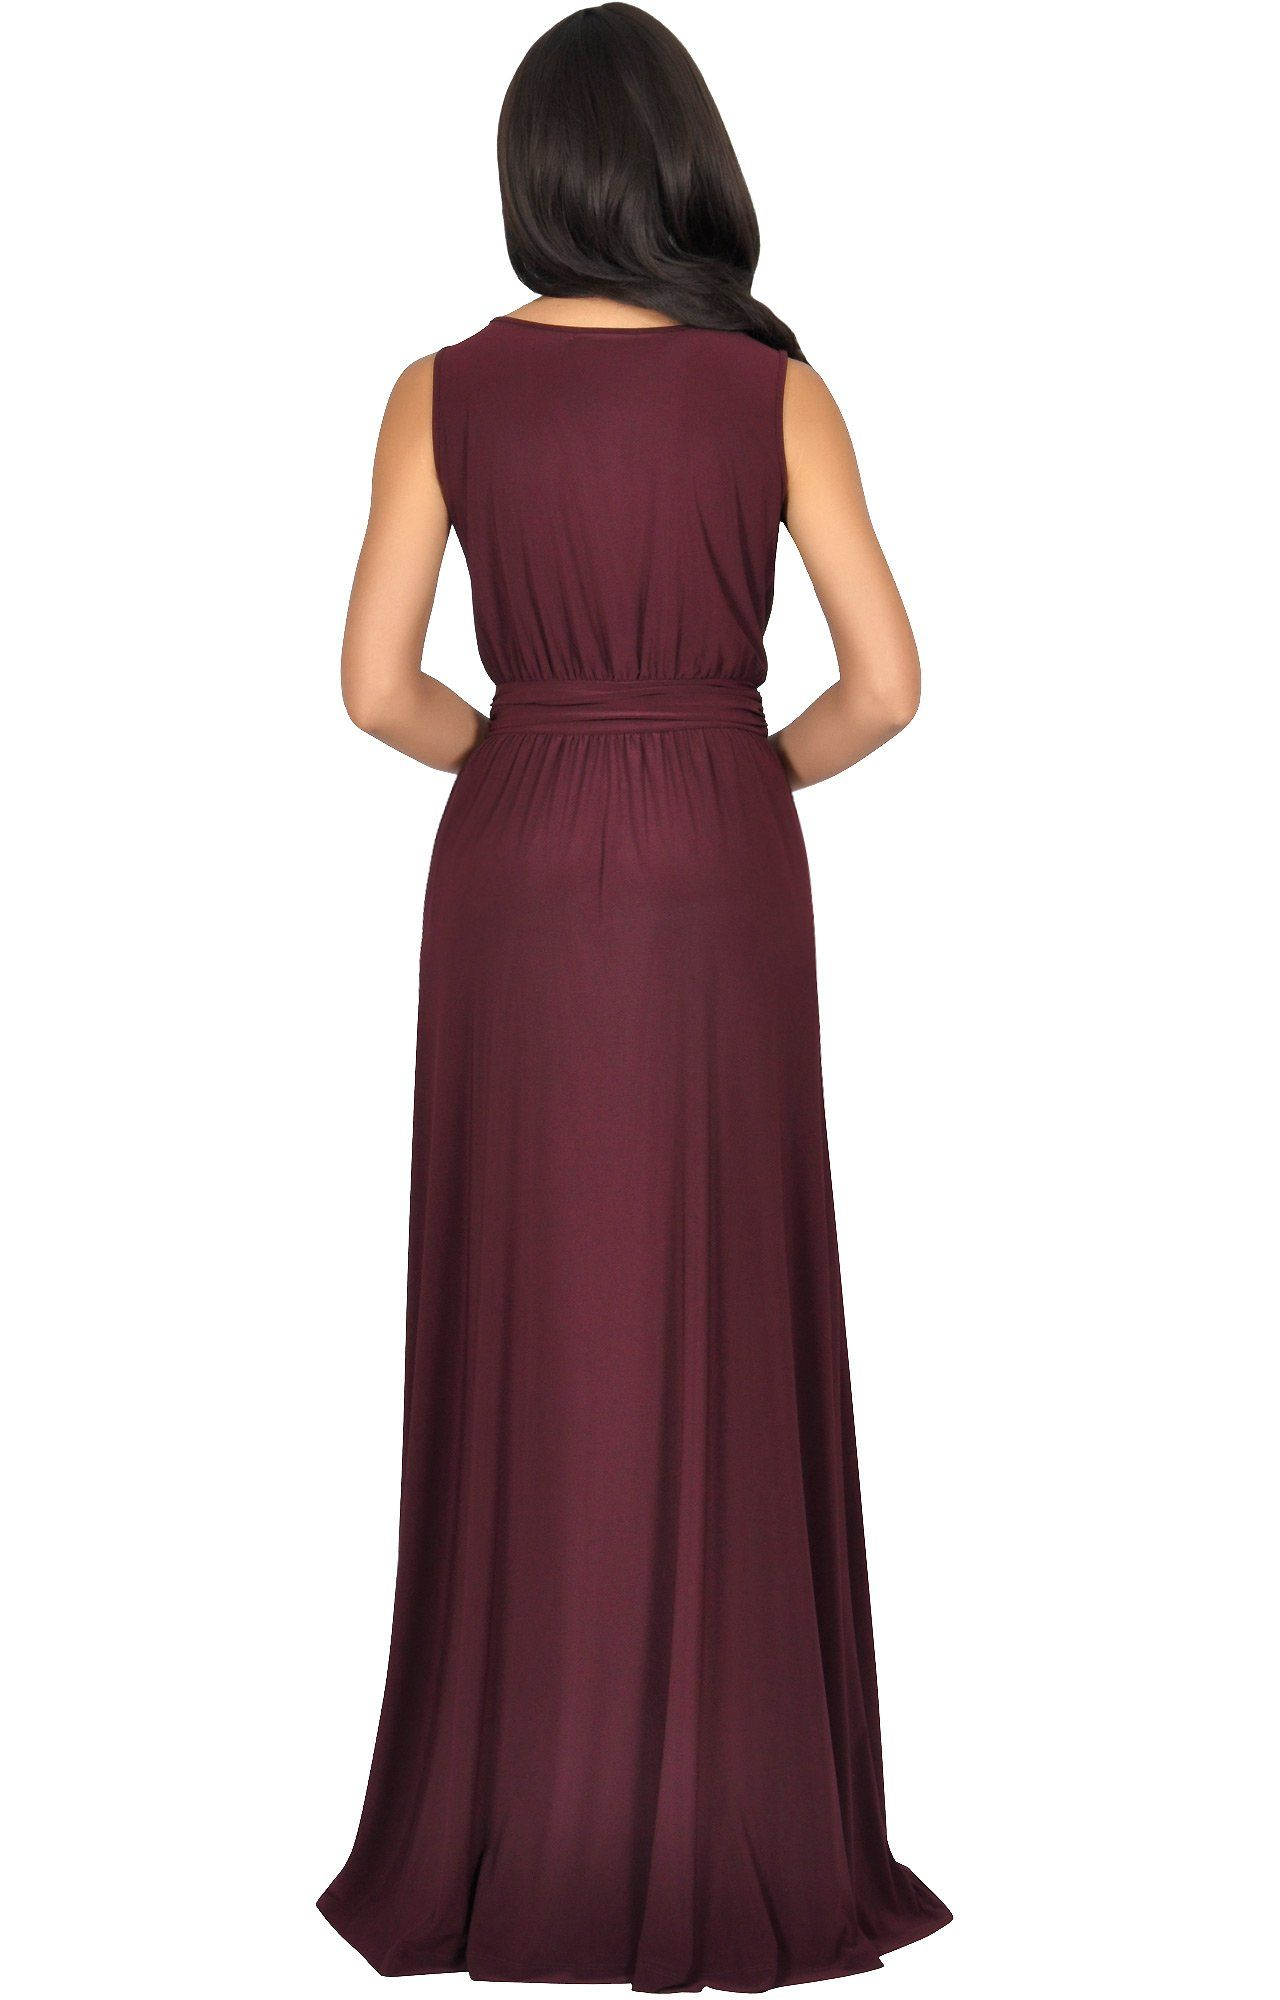 Koh koh plus size womens long sleeveless flowy bridesmaids cocktail